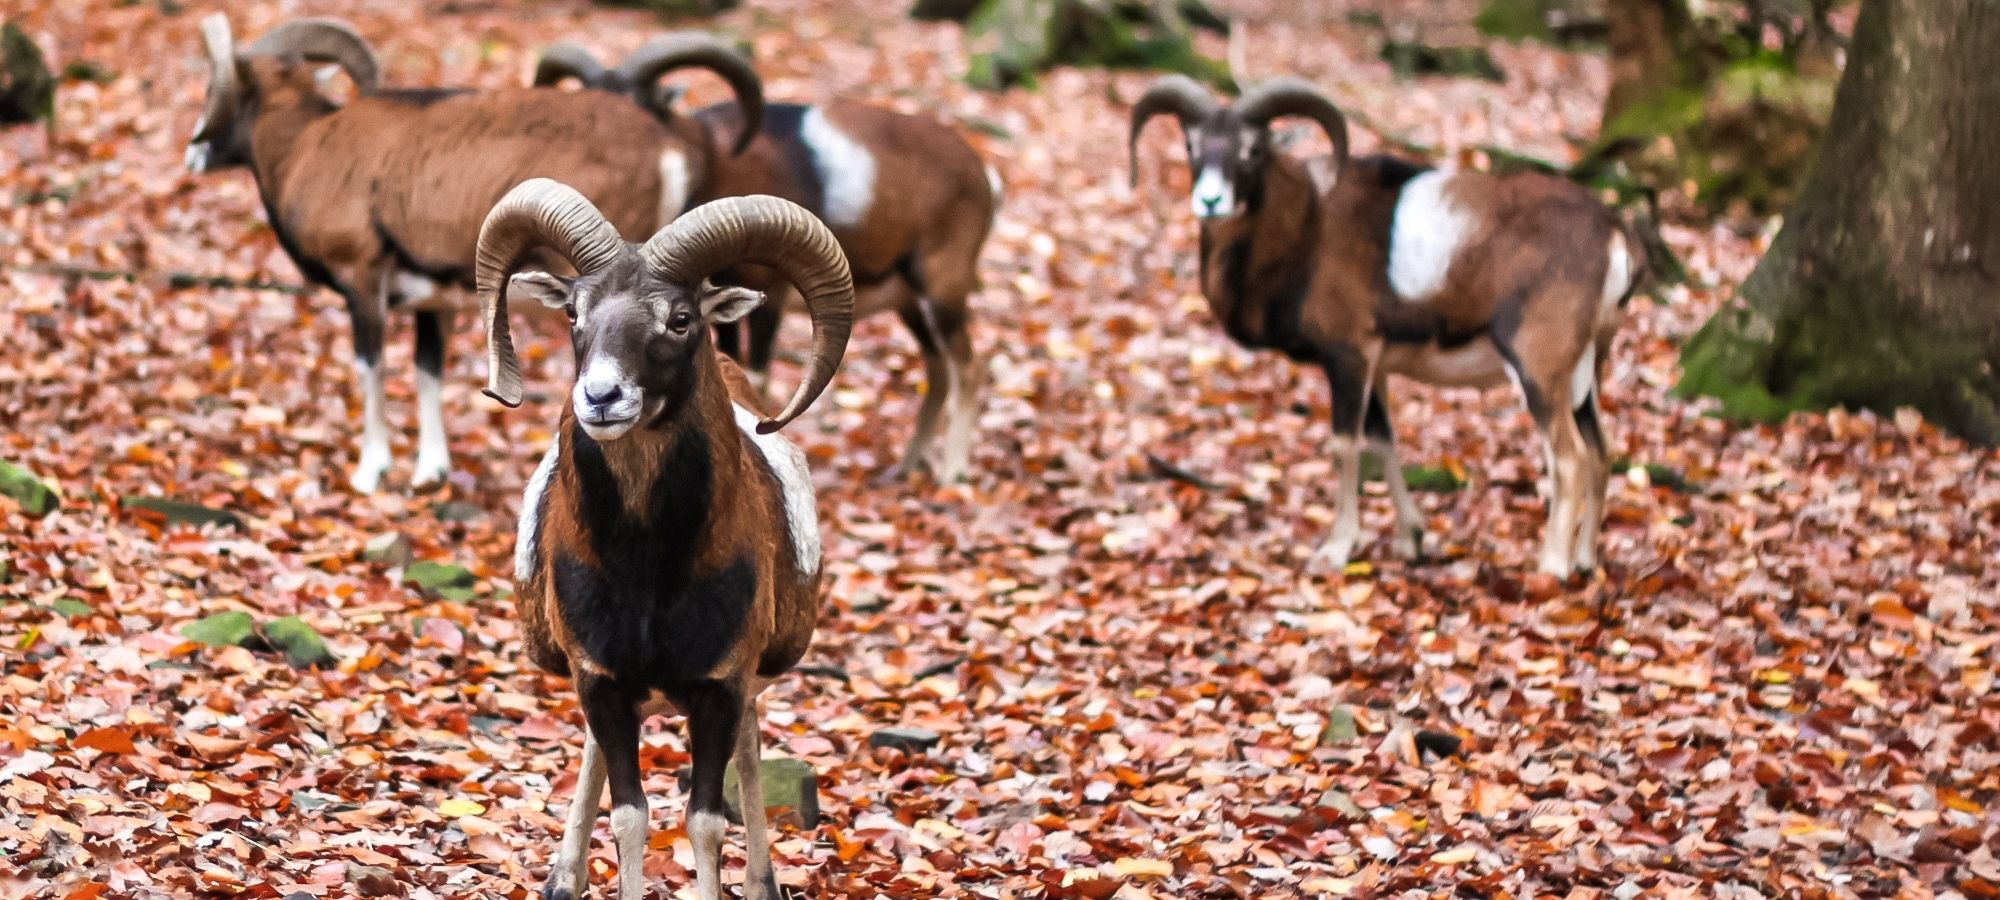 Curved horned goats at Le parc a gibier, Ardennes, Belgium